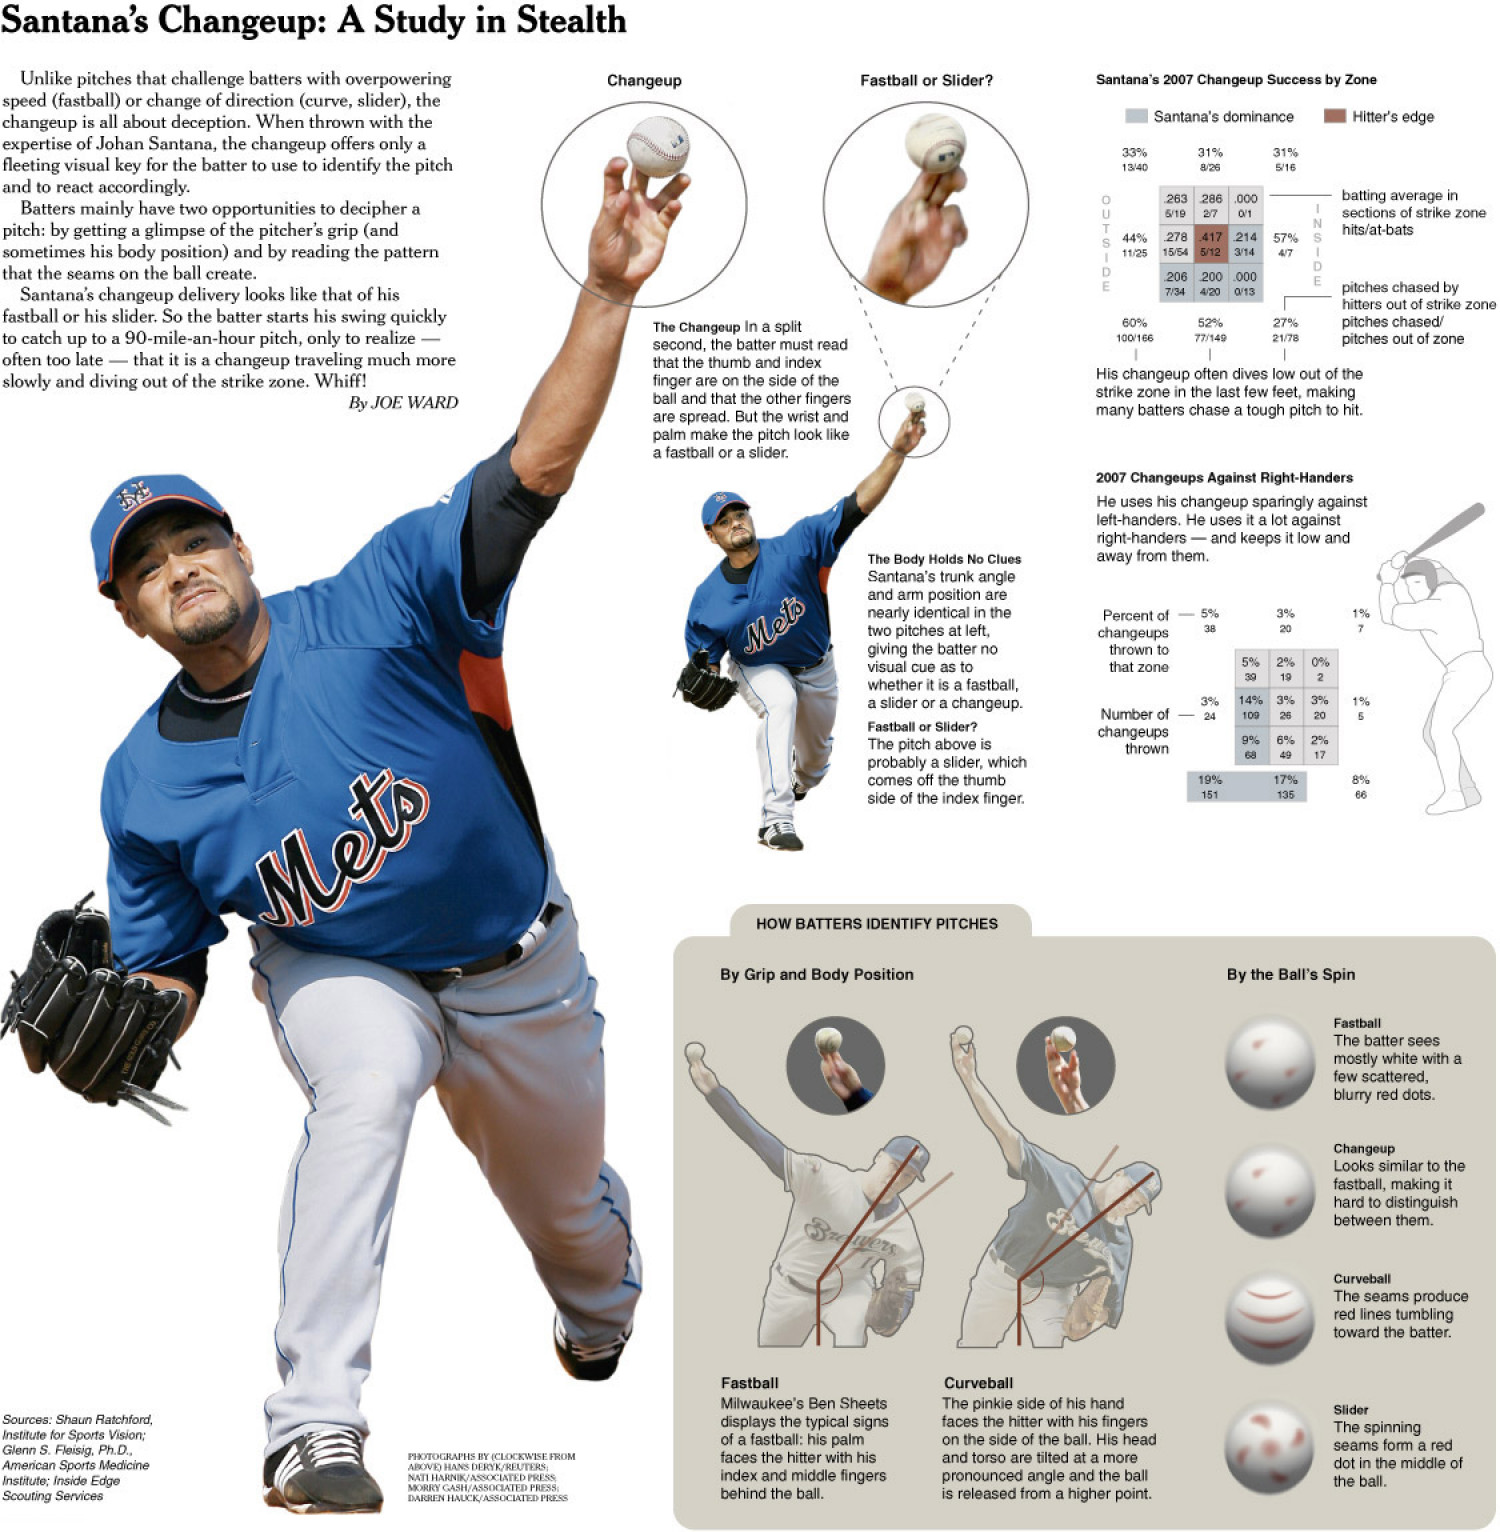 Santana's Changeup: A Study in Stealth Infographic